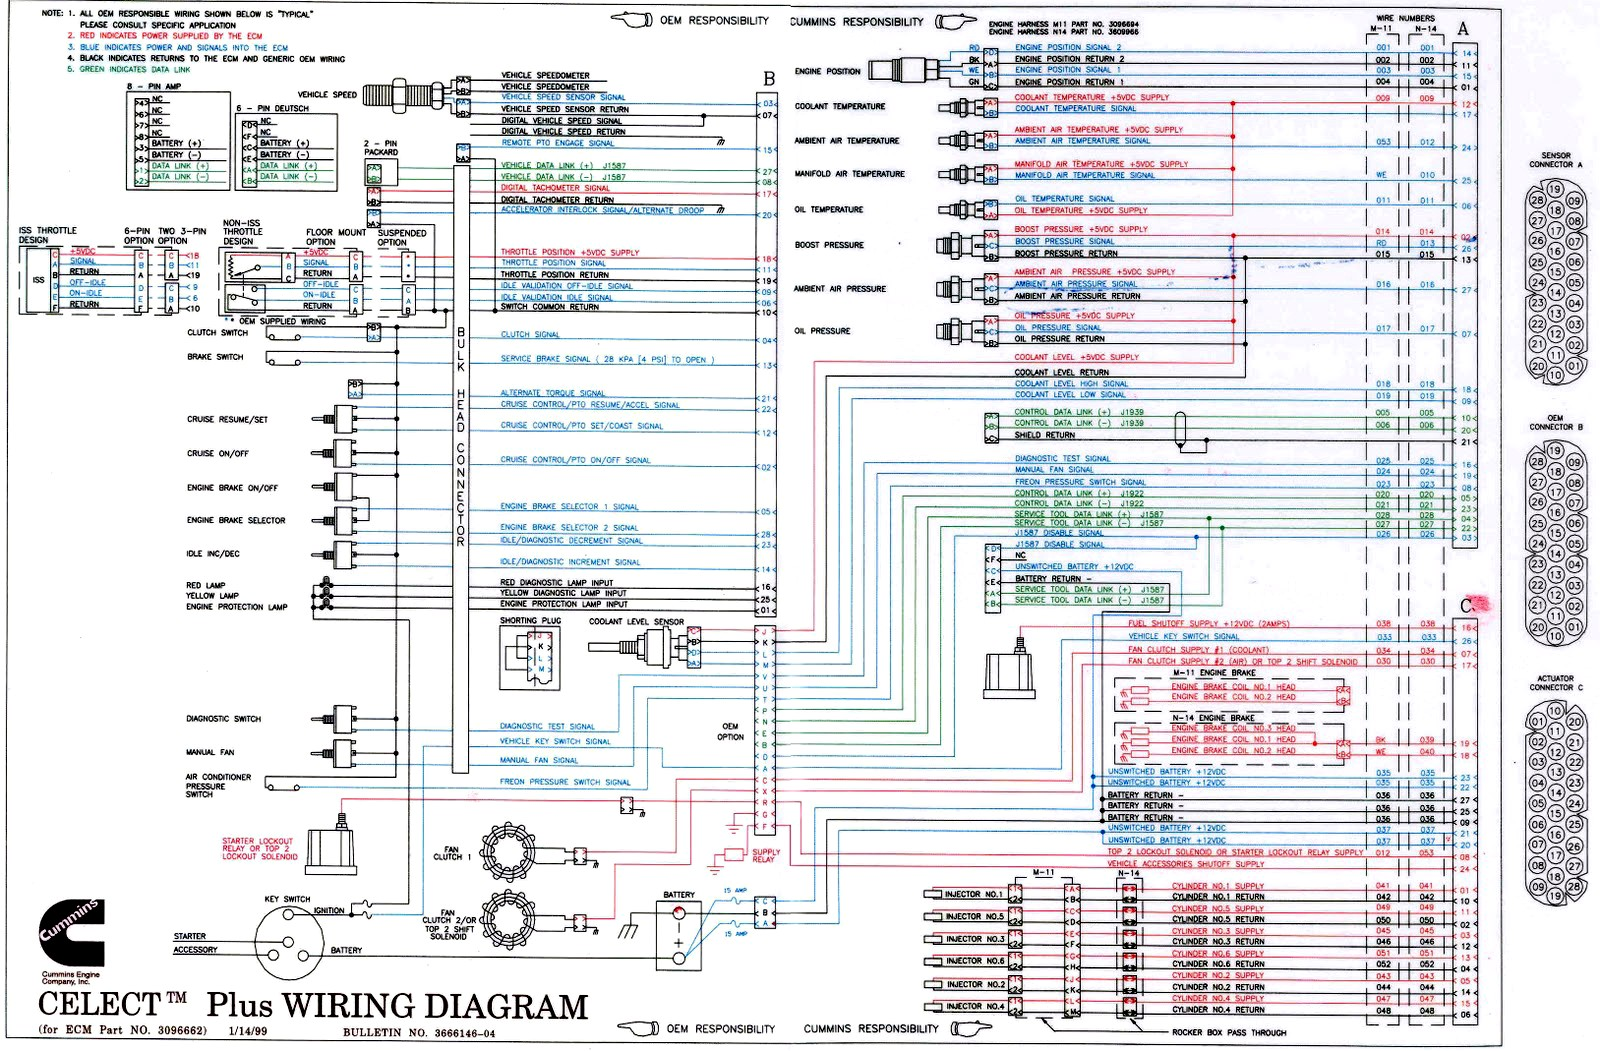 Celect+Plus+Wiring+Diagram+Cummins kenworth t660 wiring diagram kenworth t660 schematics \u2022 wiring International Prostar Front Grill at bayanpartner.co